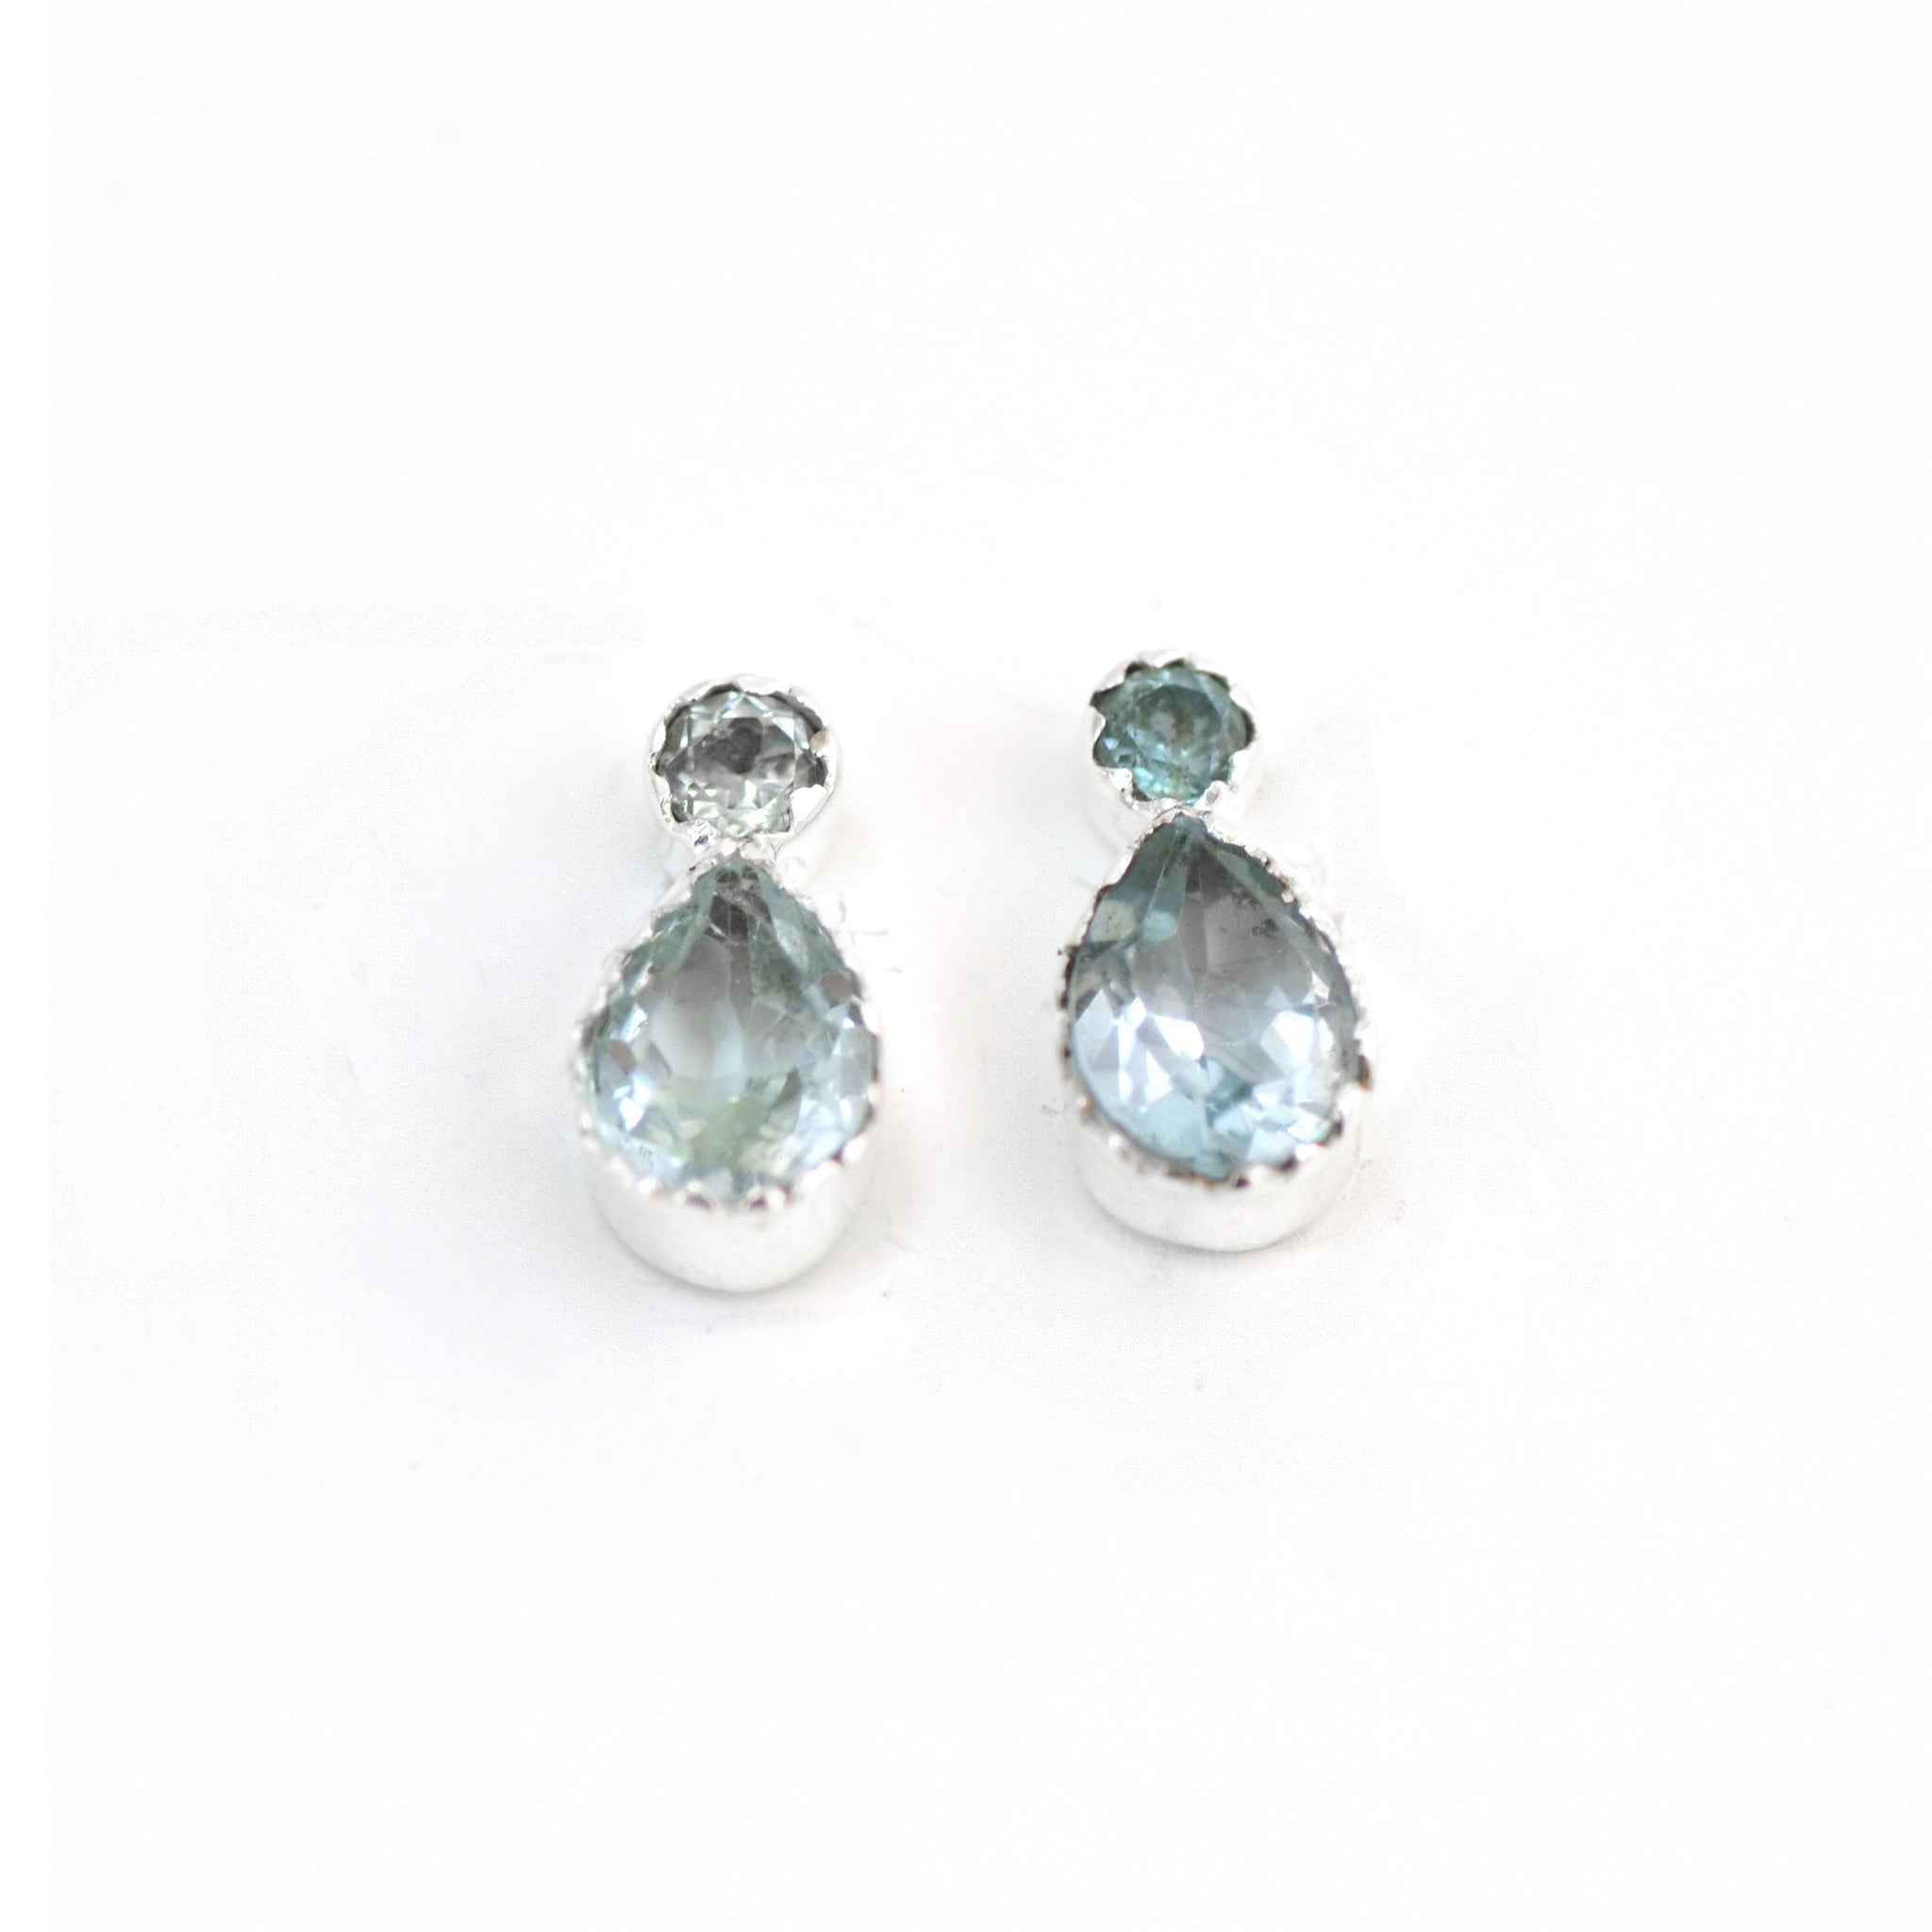 Lemniscate Blue Topaz Silver Stud Earrings